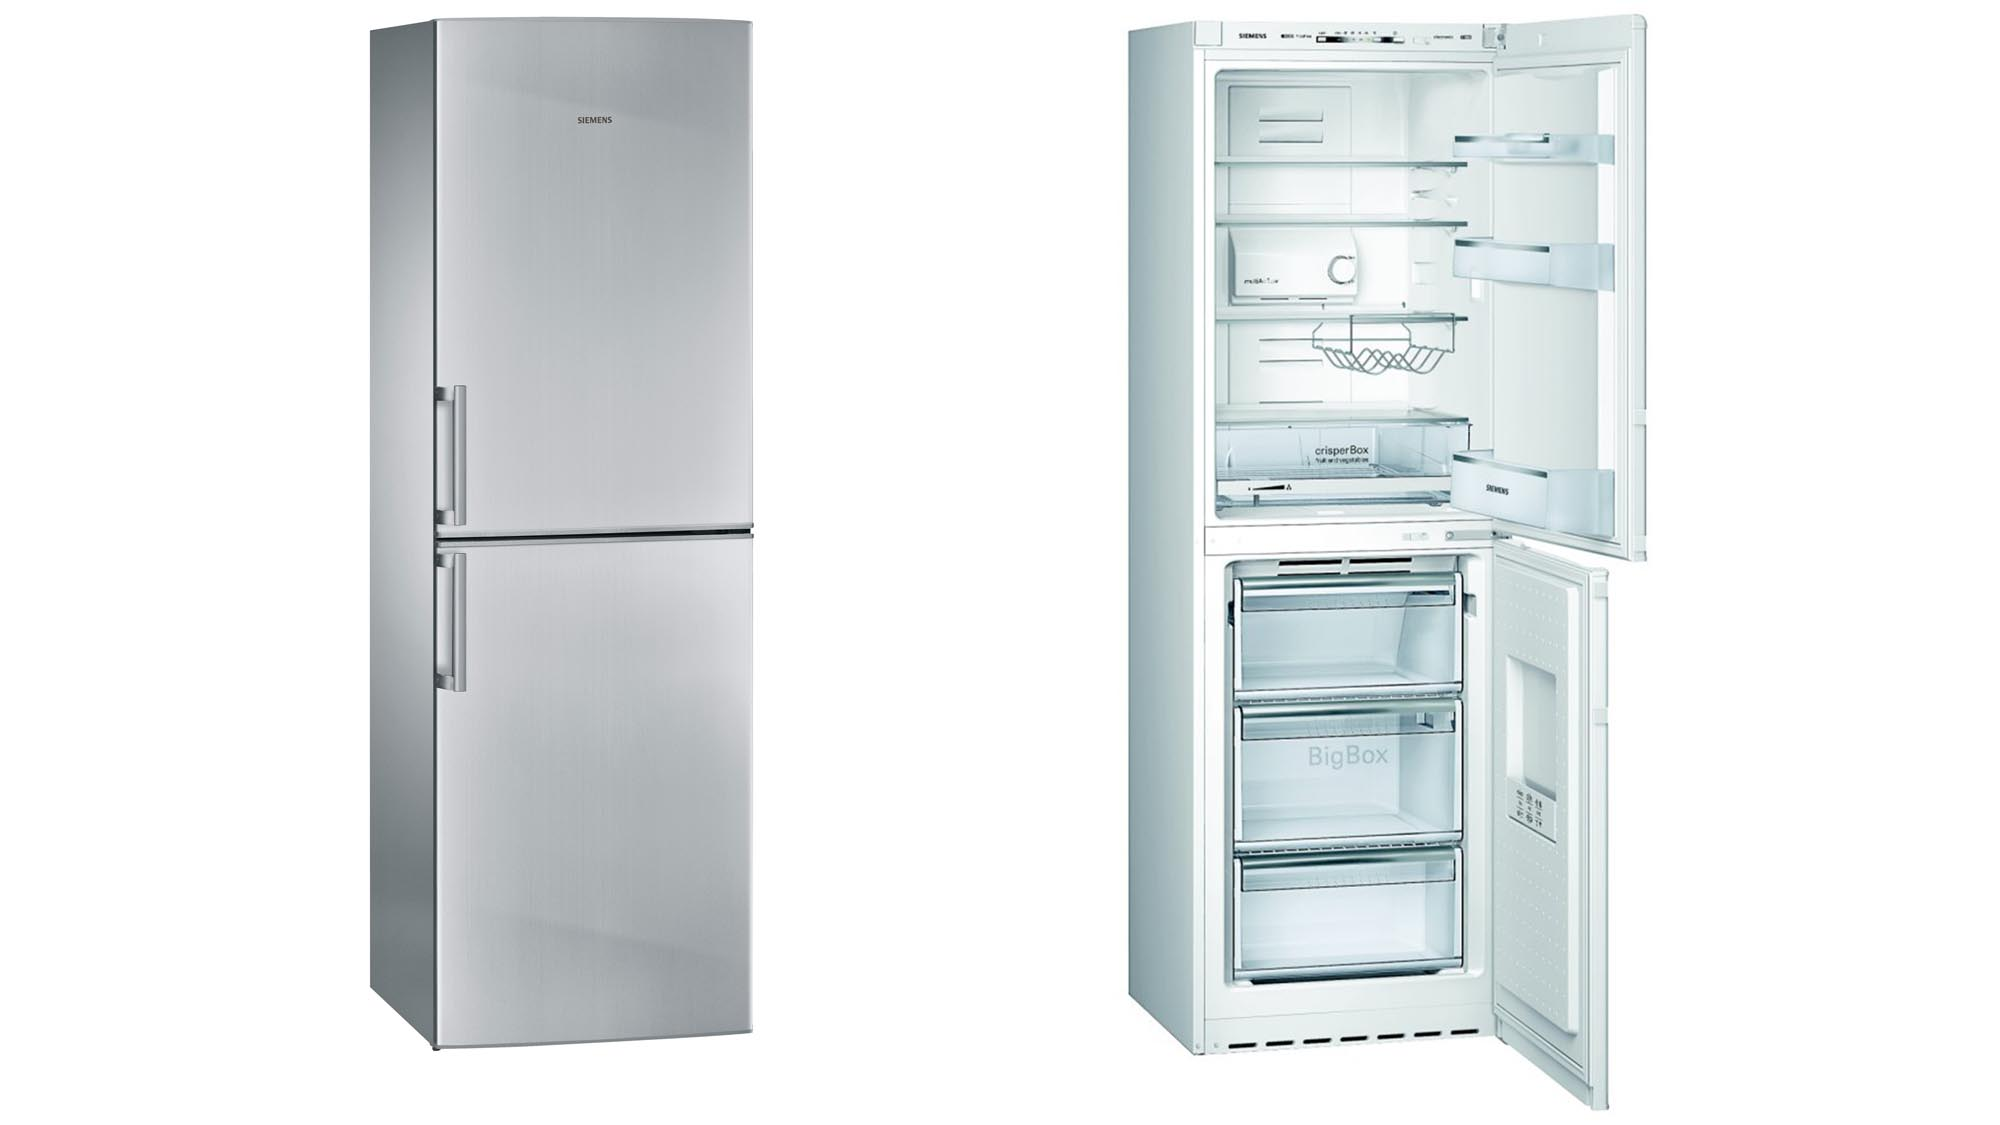 refrigerator under 200. where many fridge freezers are split 60/40 with a lot more space given over to the refrigeration area, this germanic model appears, at first glance, refrigerator under 200